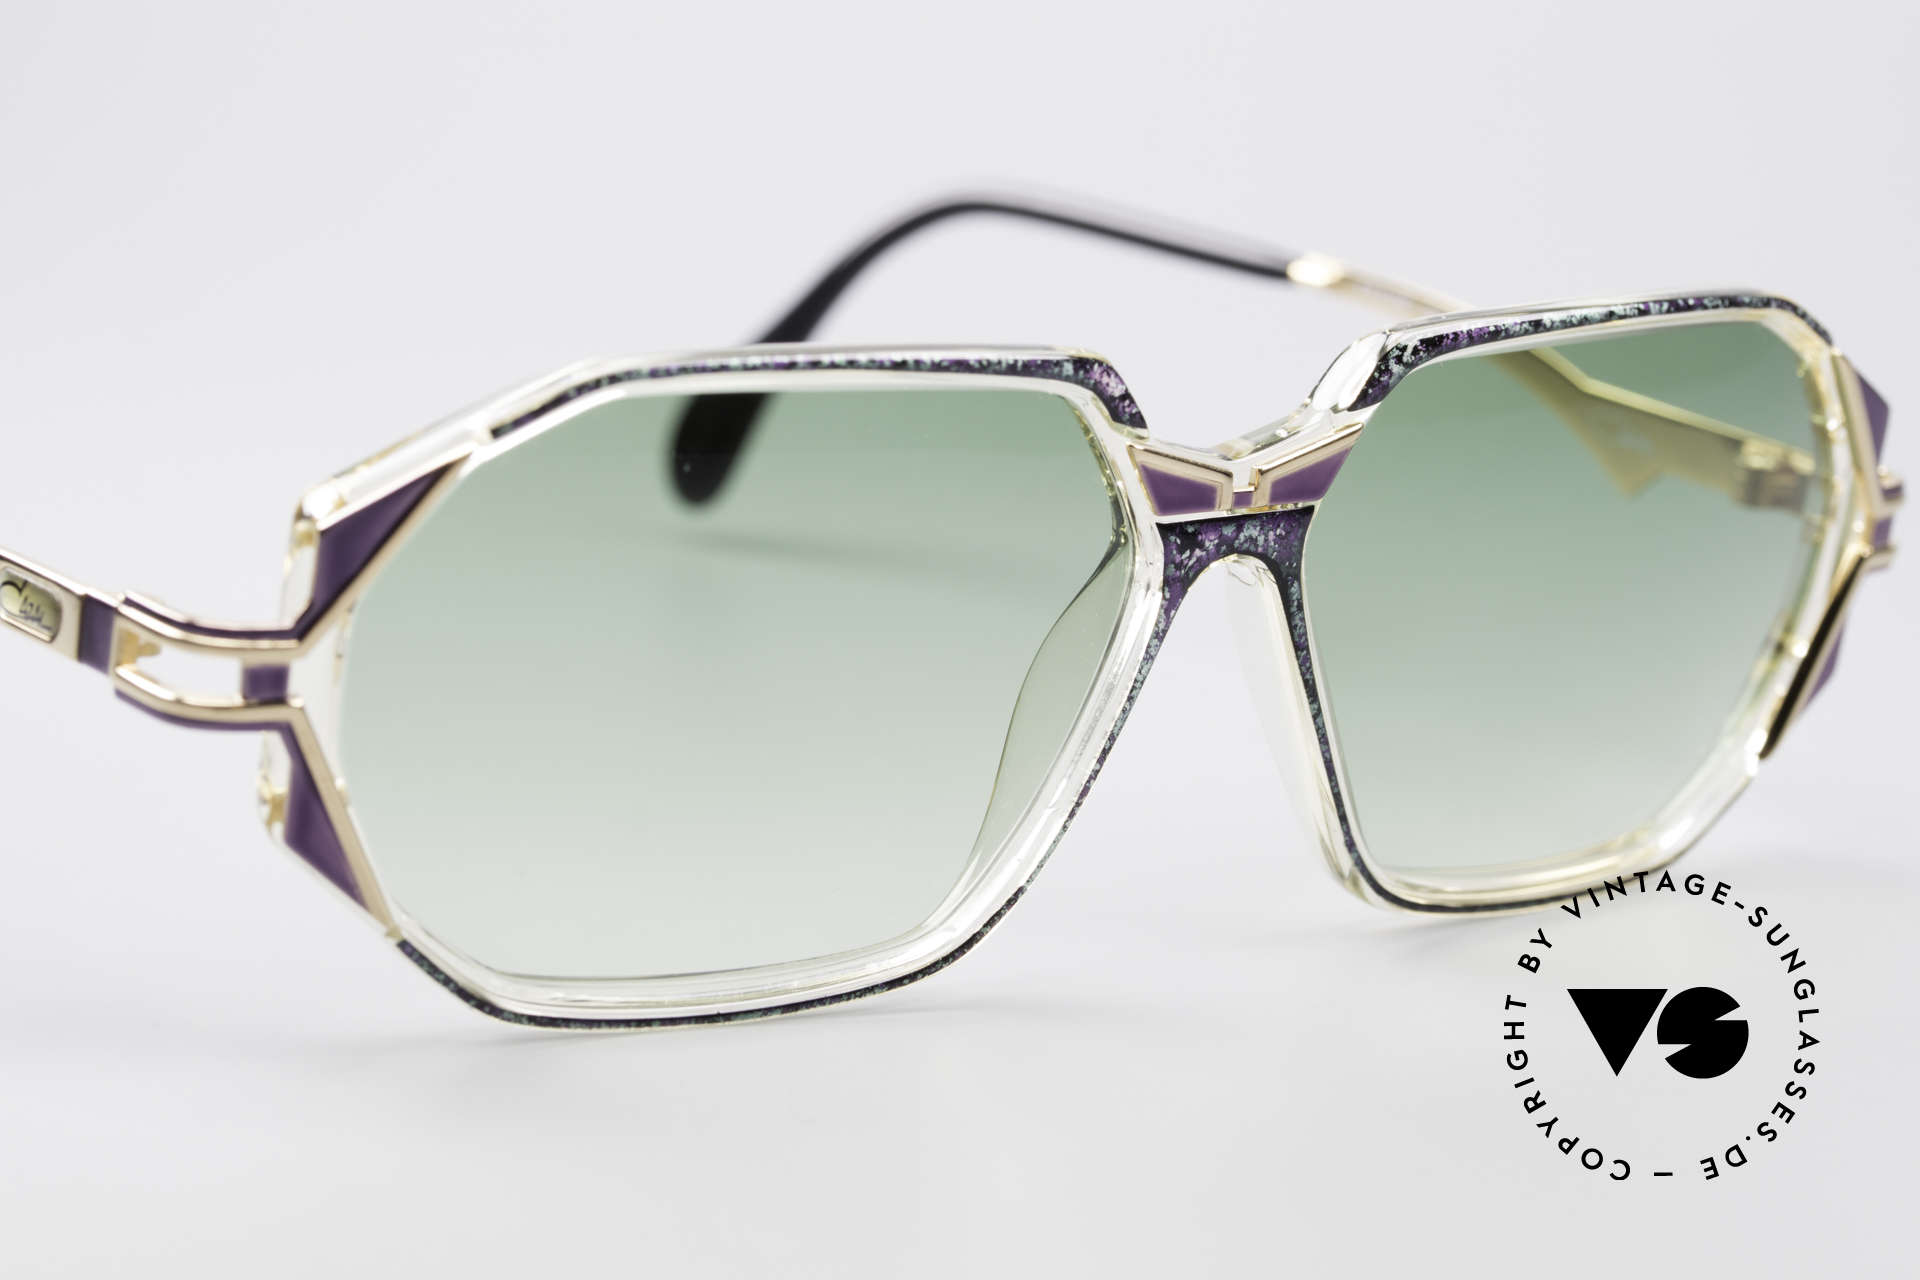 Cazal 361 Original Ladies 90s Sunglasses, never worn (like all our rare VINTAGE Cazal sunglasses), Made for Women